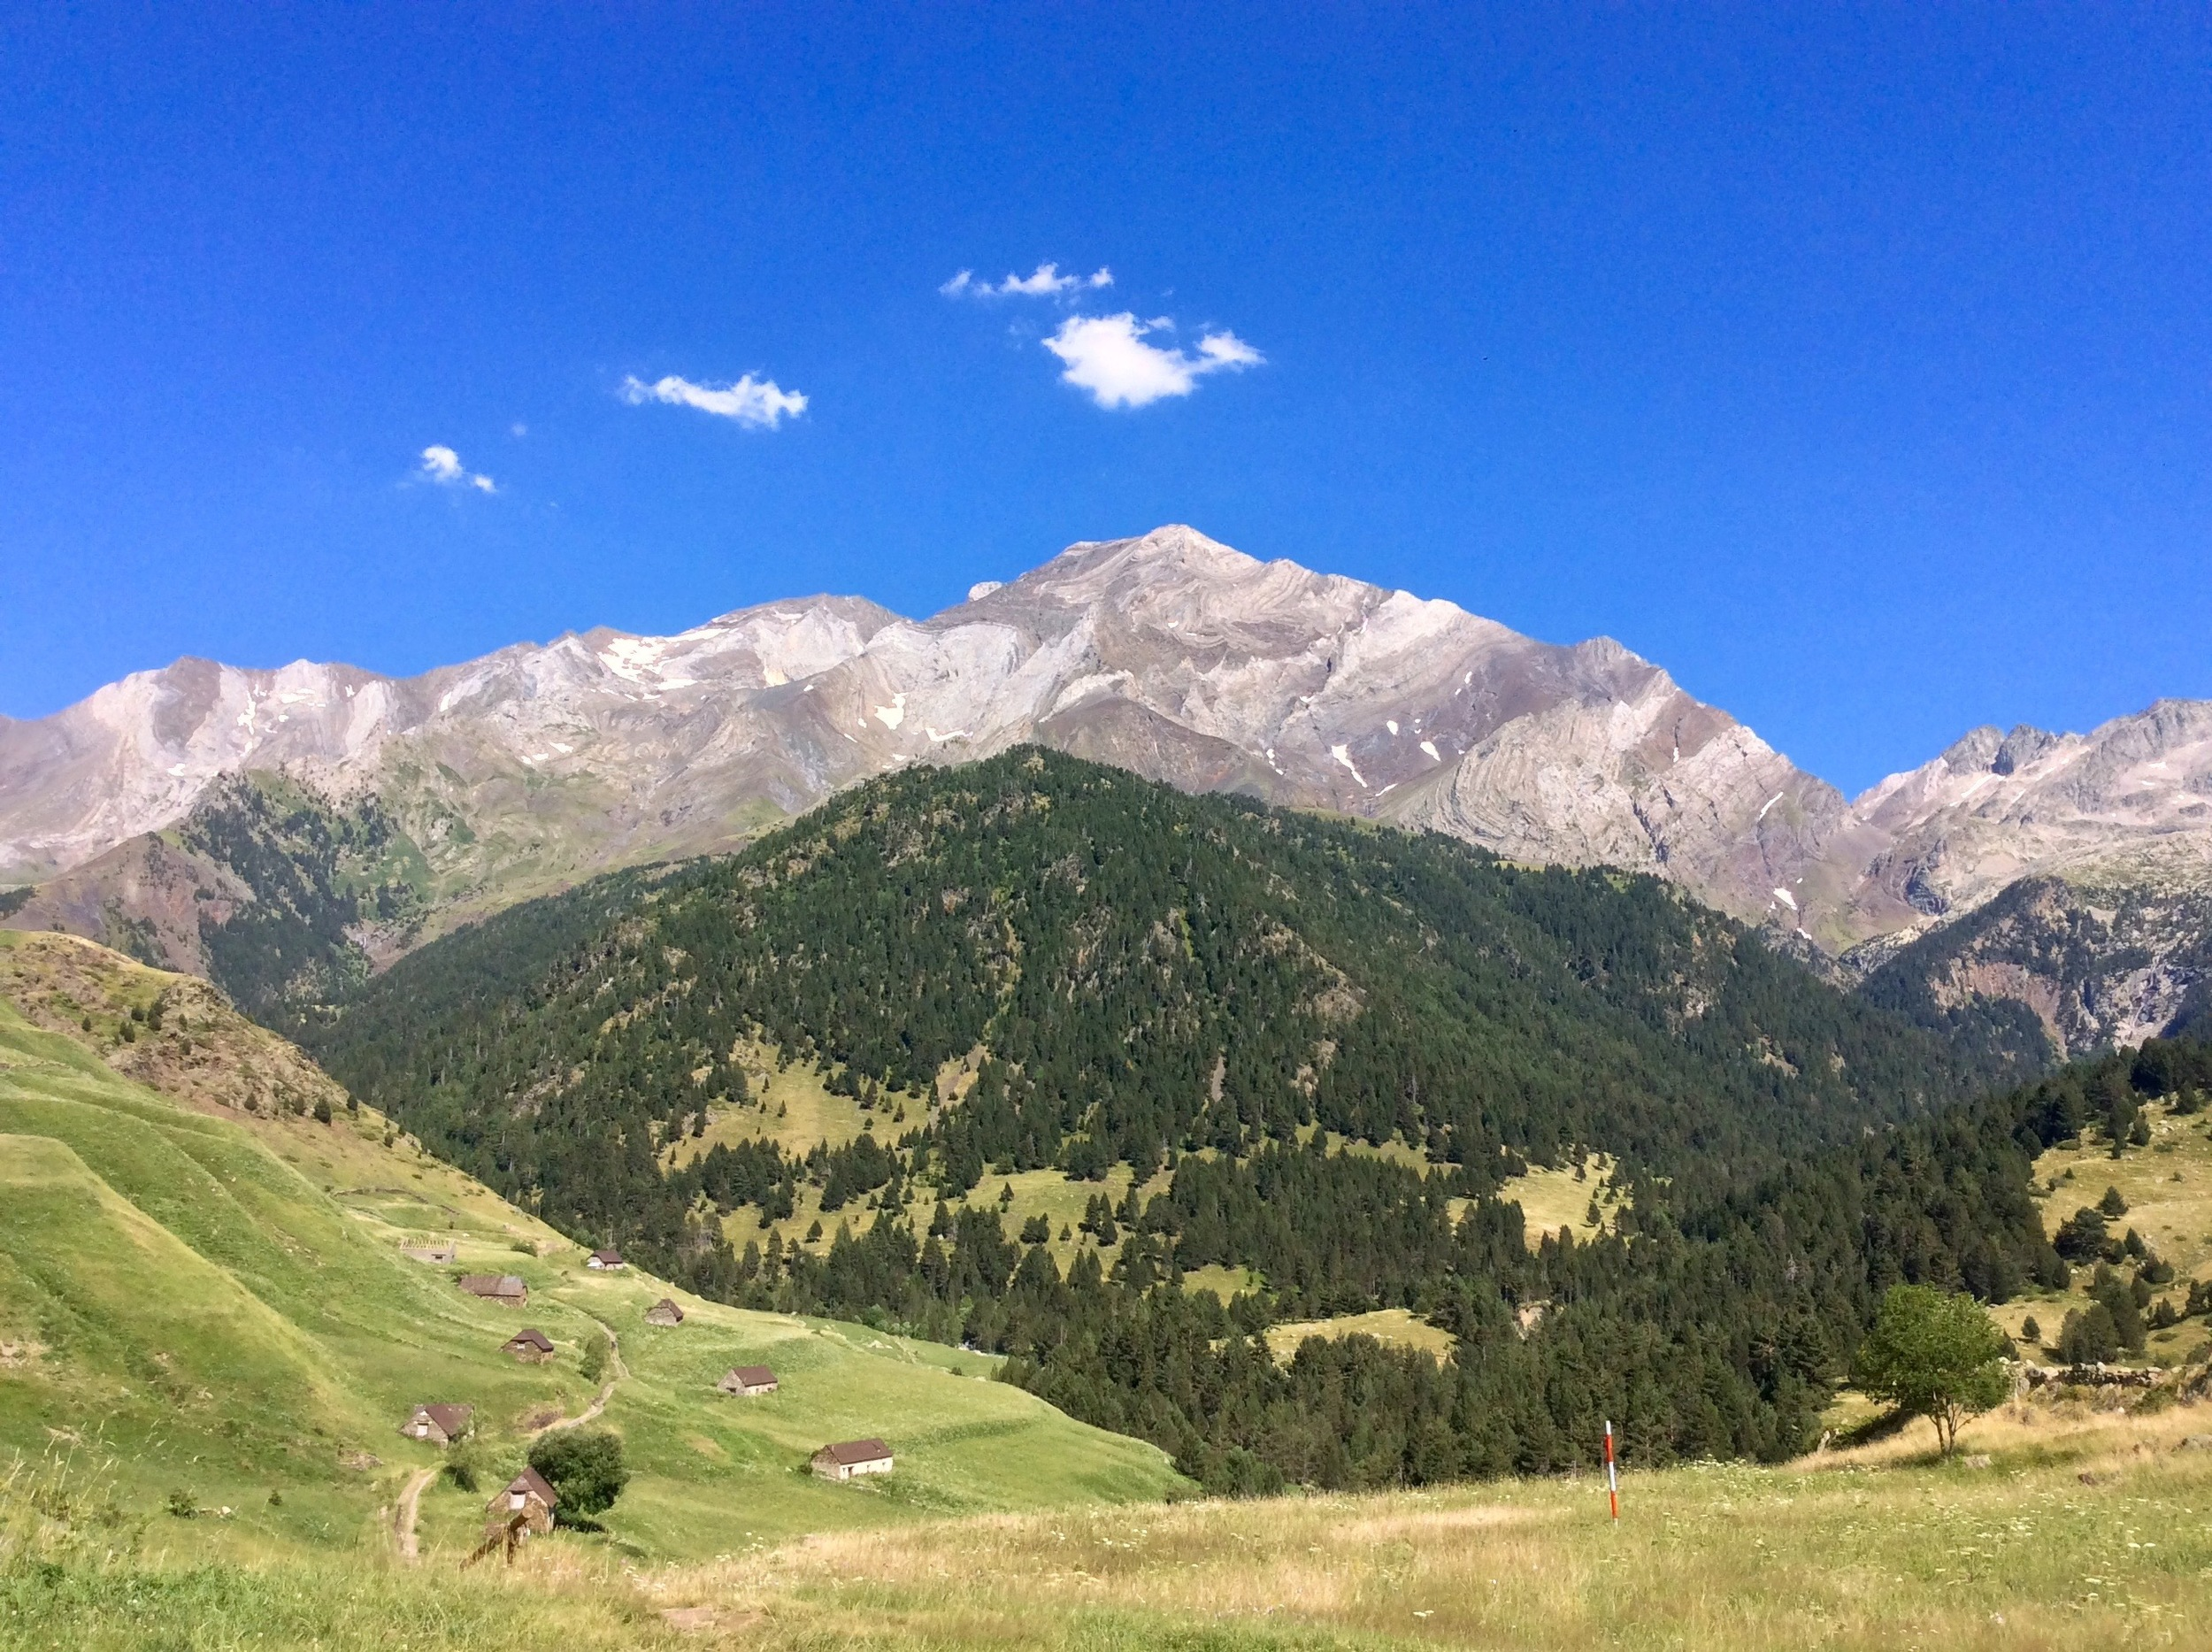 Pico Posets, second highest in the Pyrenees